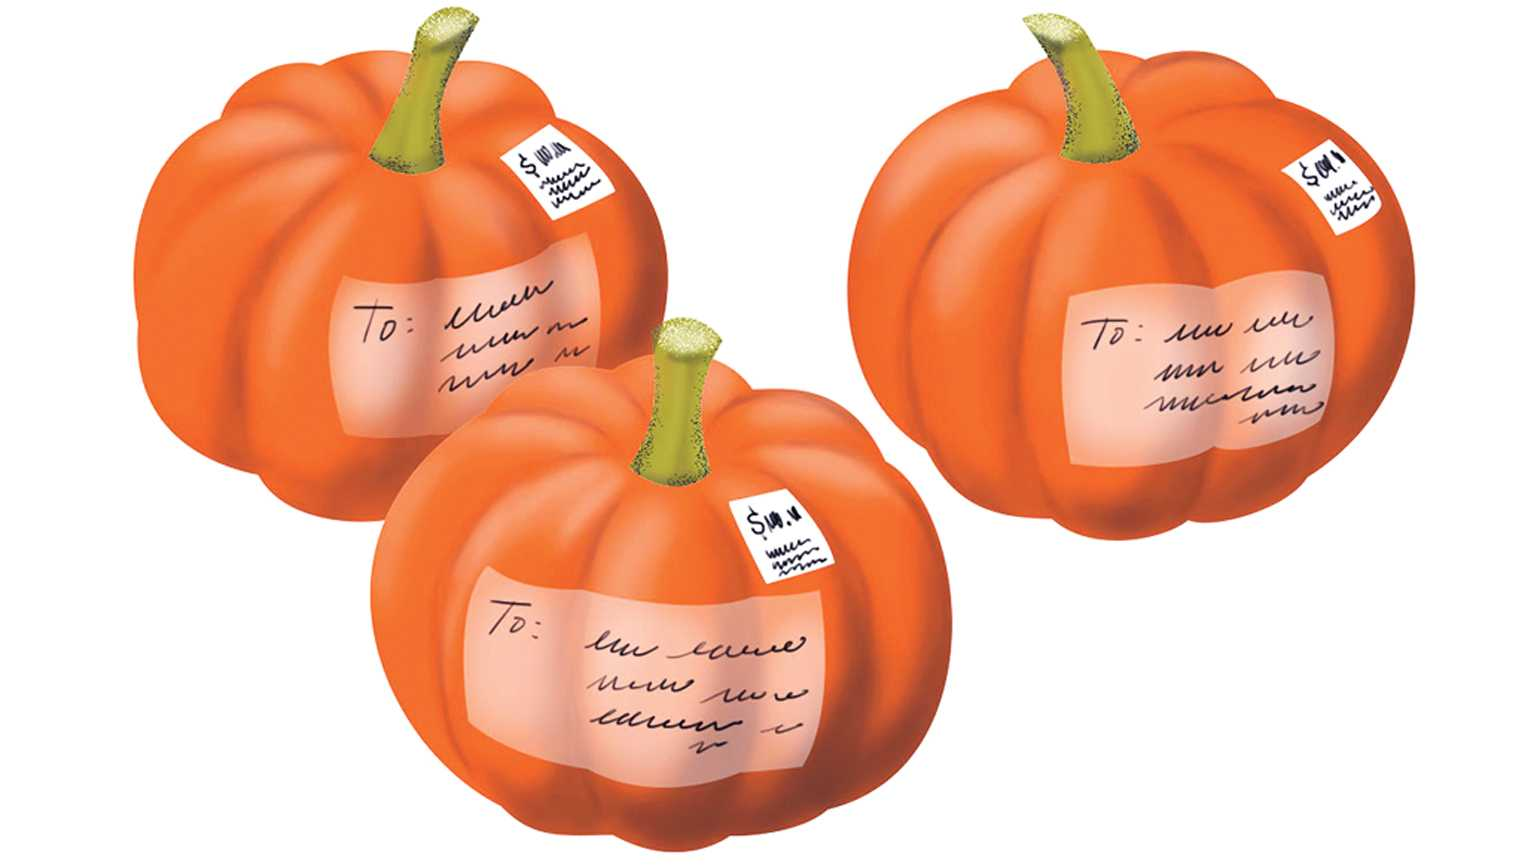 An illustration depicting three mini pumpkins with mailing address labels.